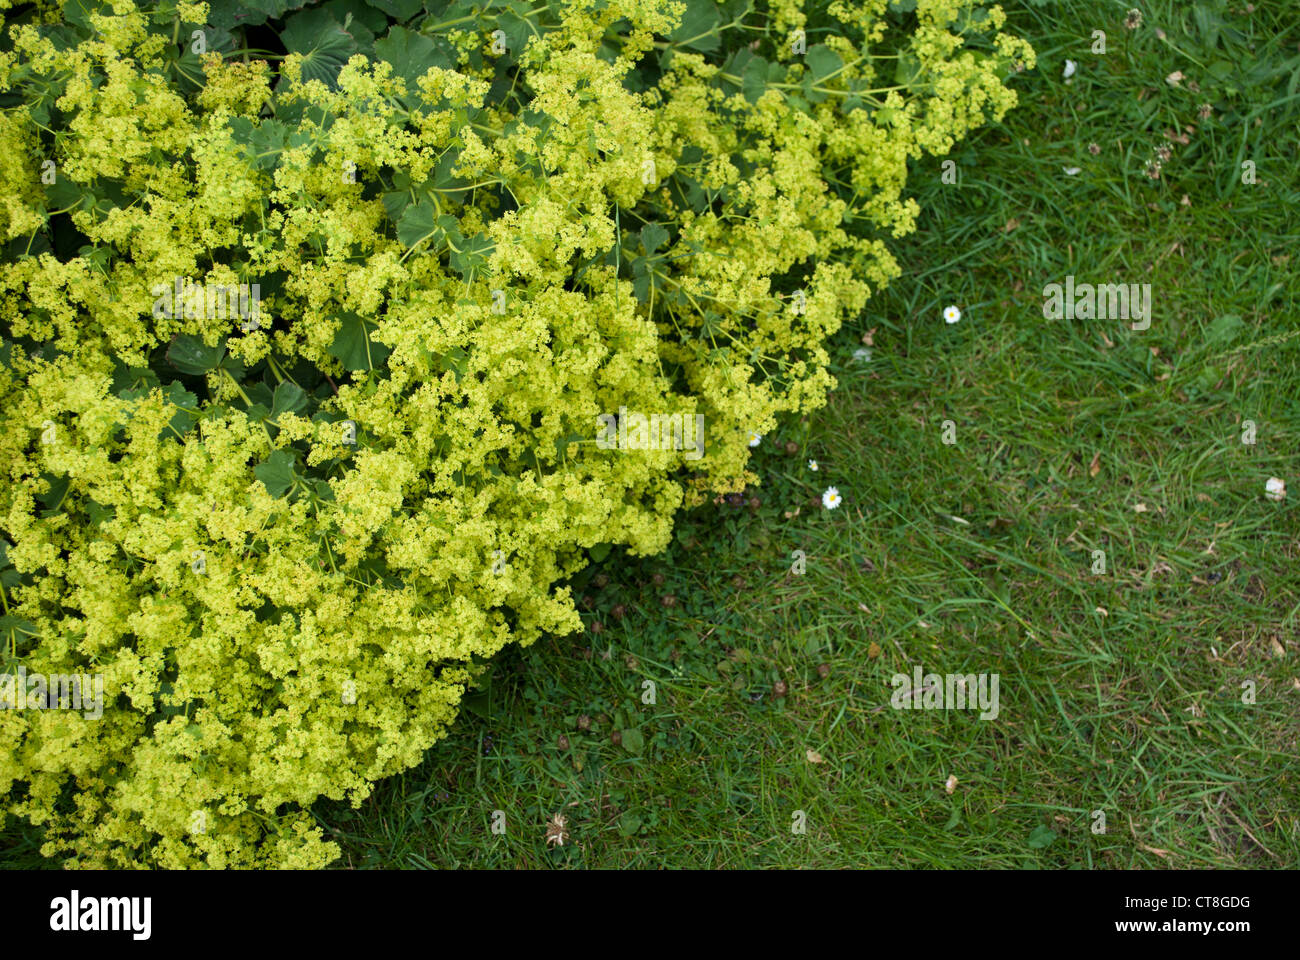 Yellow Flowered Plant Growing Over The Edge Of A Rough Lawn Dividing